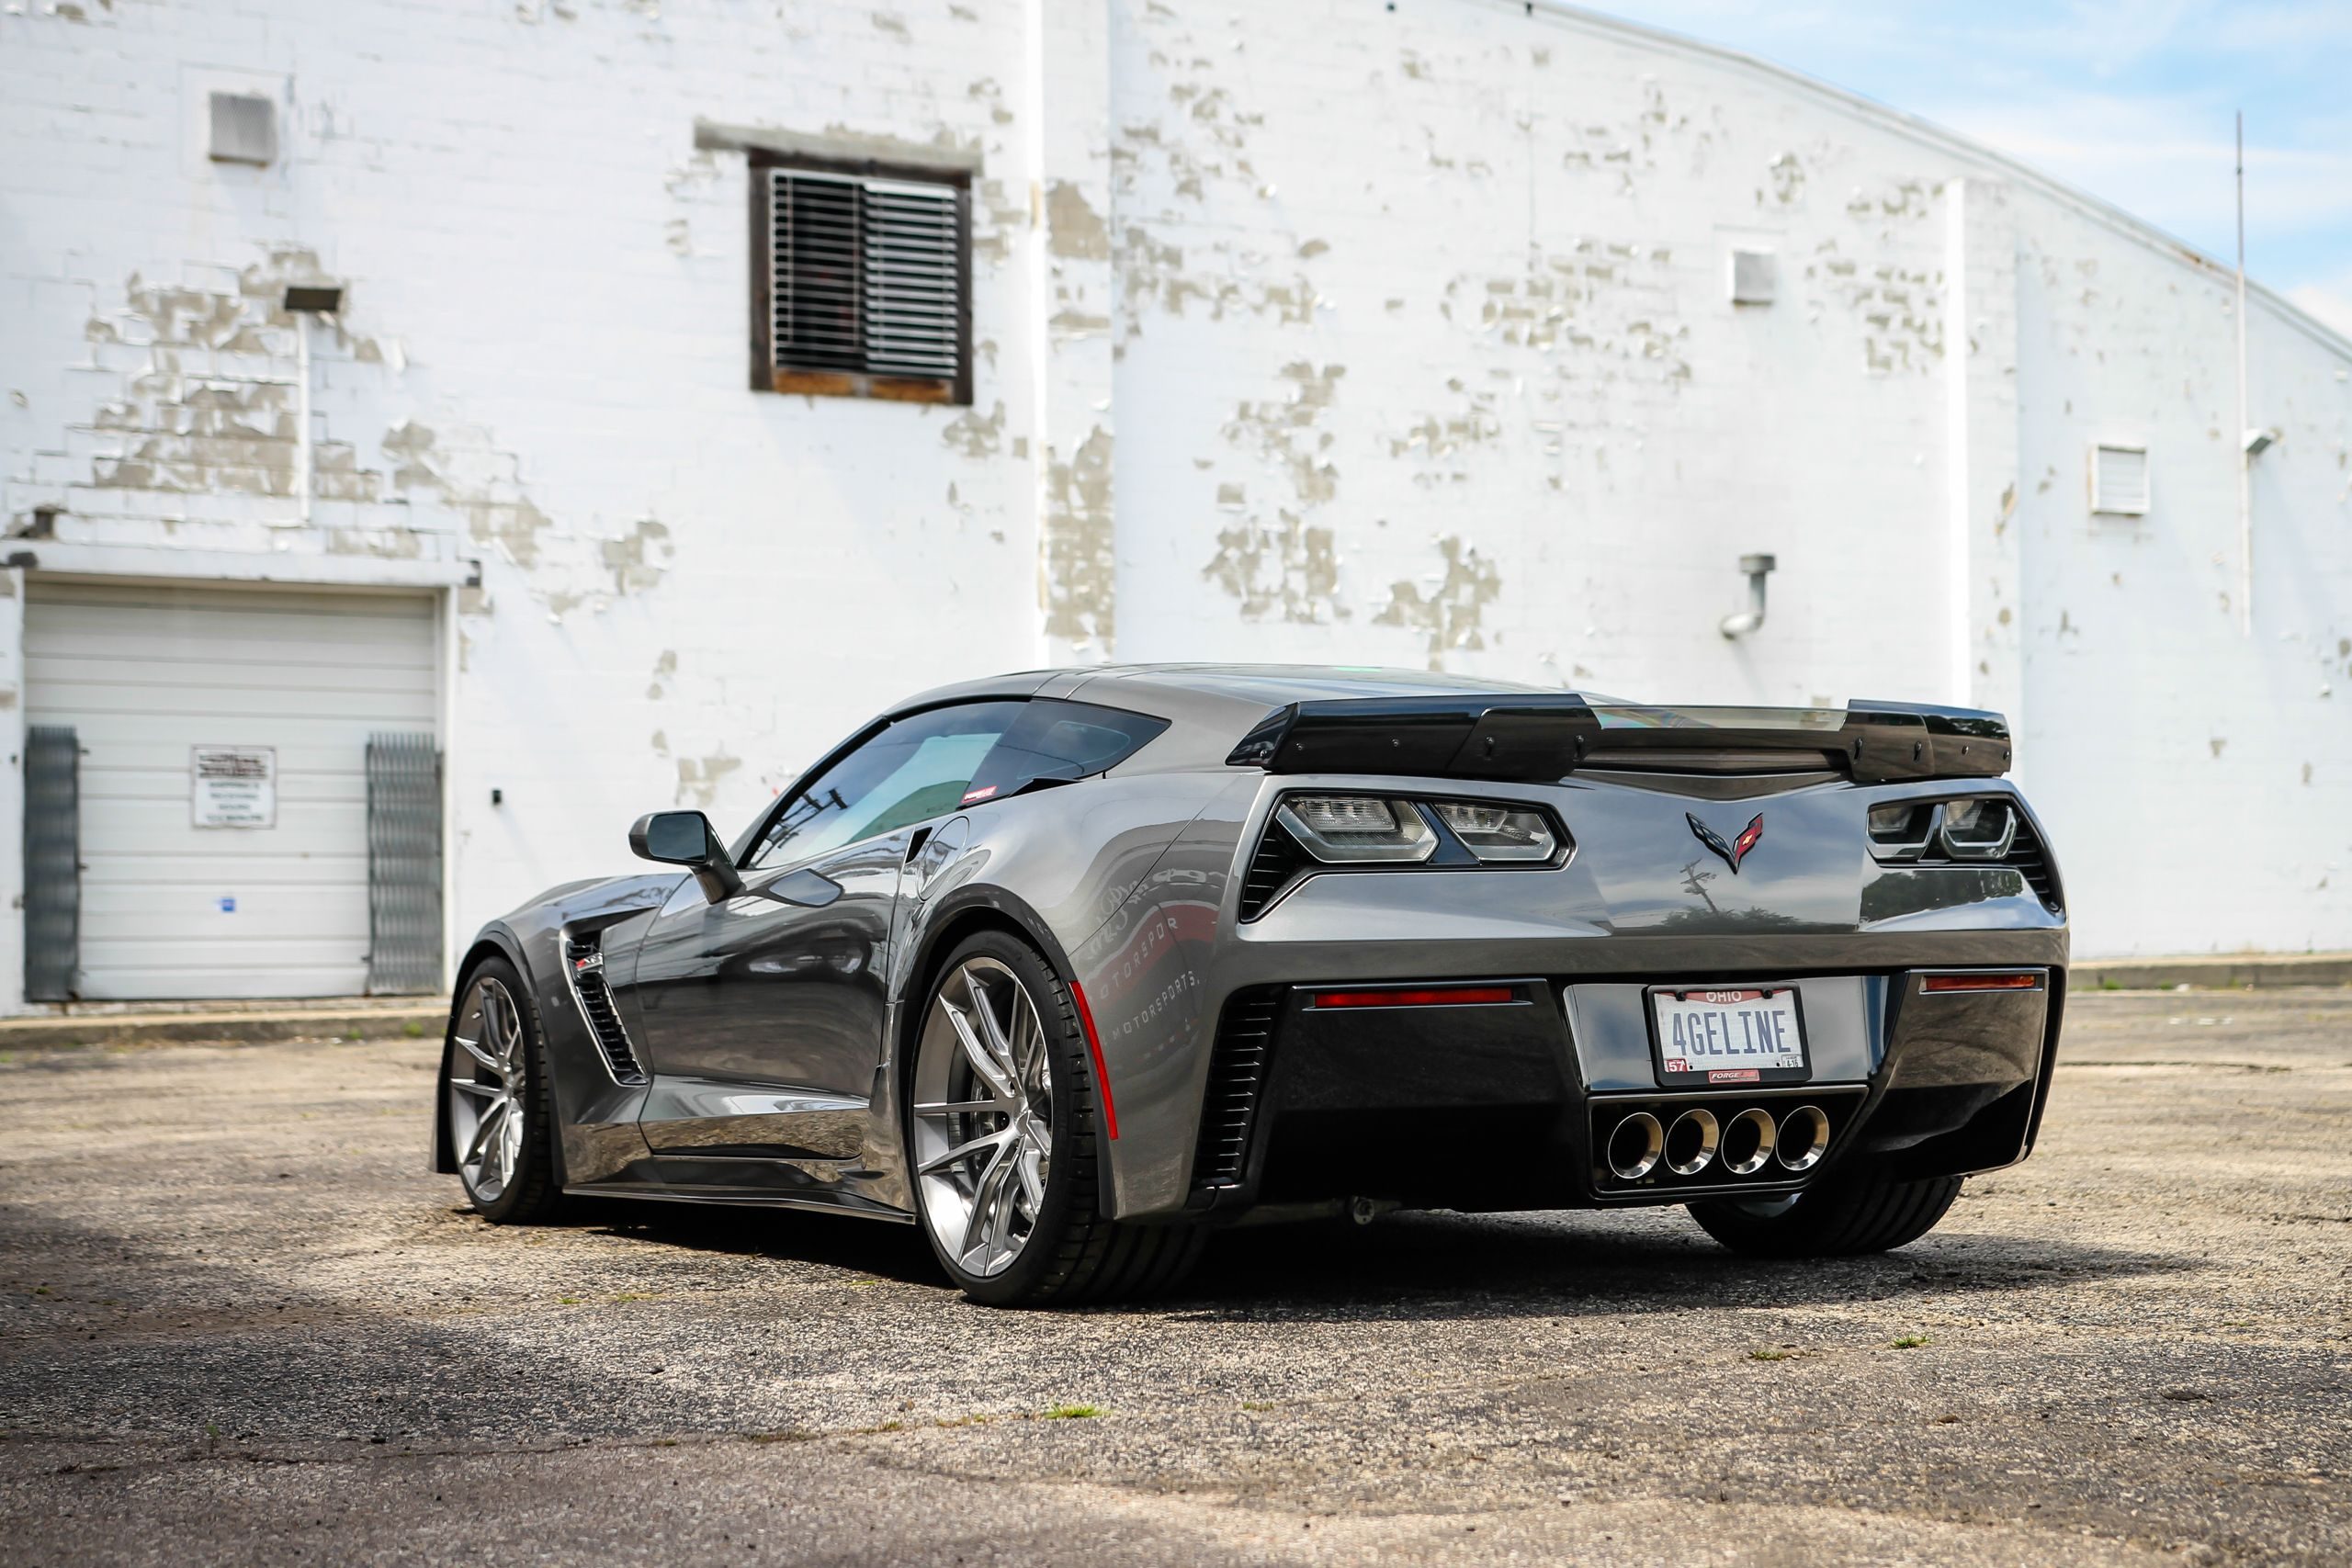 For sale our 650hp c7 corvette z06 2lz with the z07 performance package is on the market this perfectly maintained supercar is equipped with the